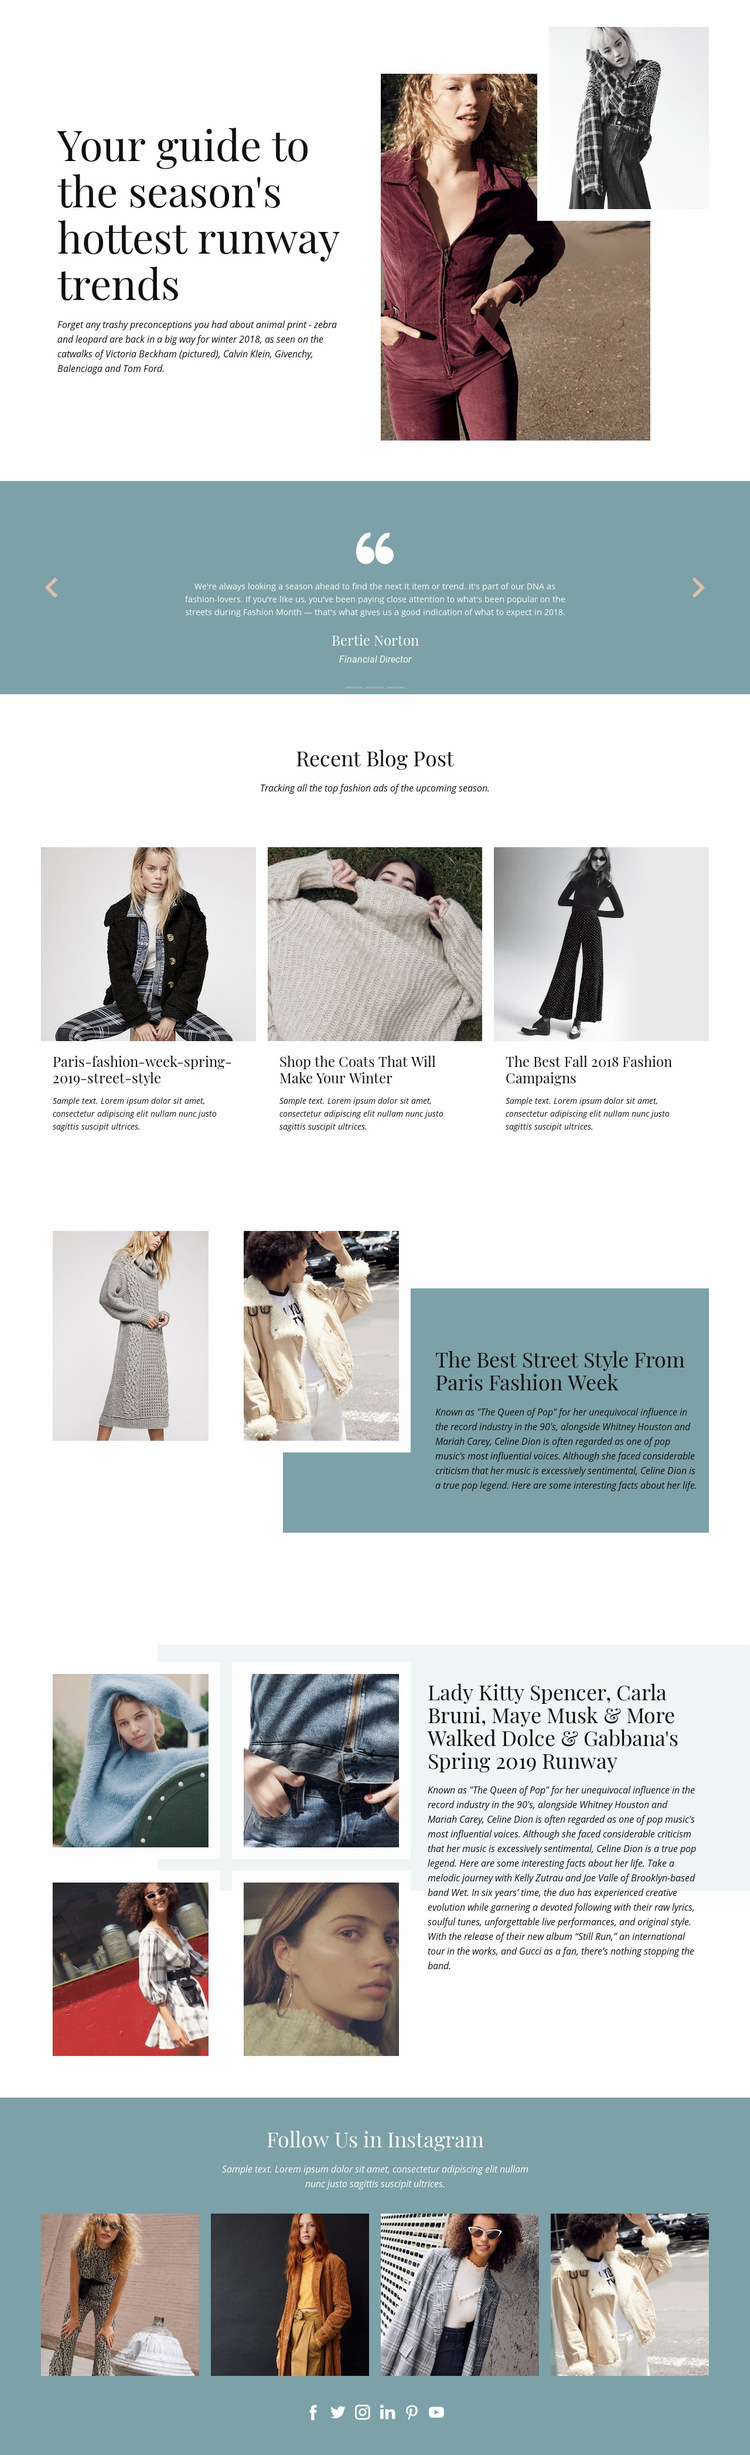 Free people Web Page Design